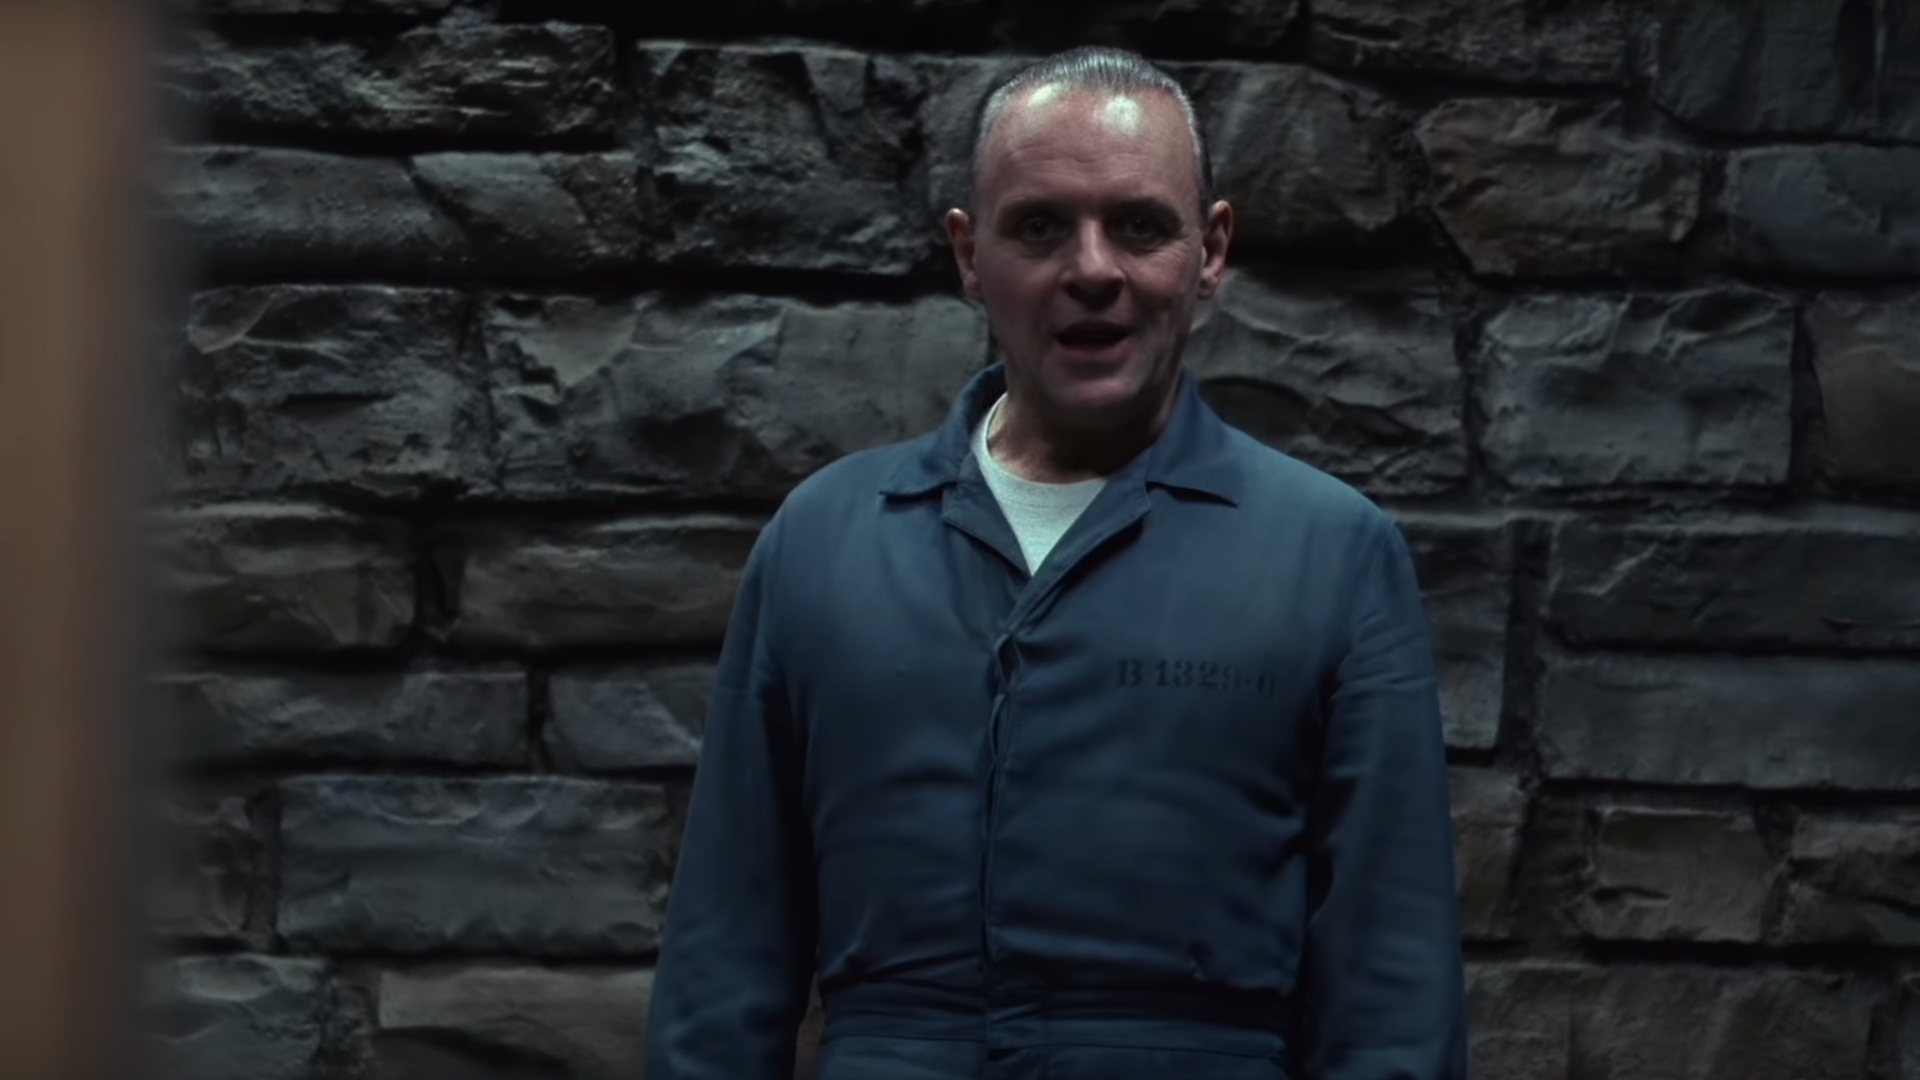 Fascinating Silence Of The Lambs Scene Dissection Shows How The